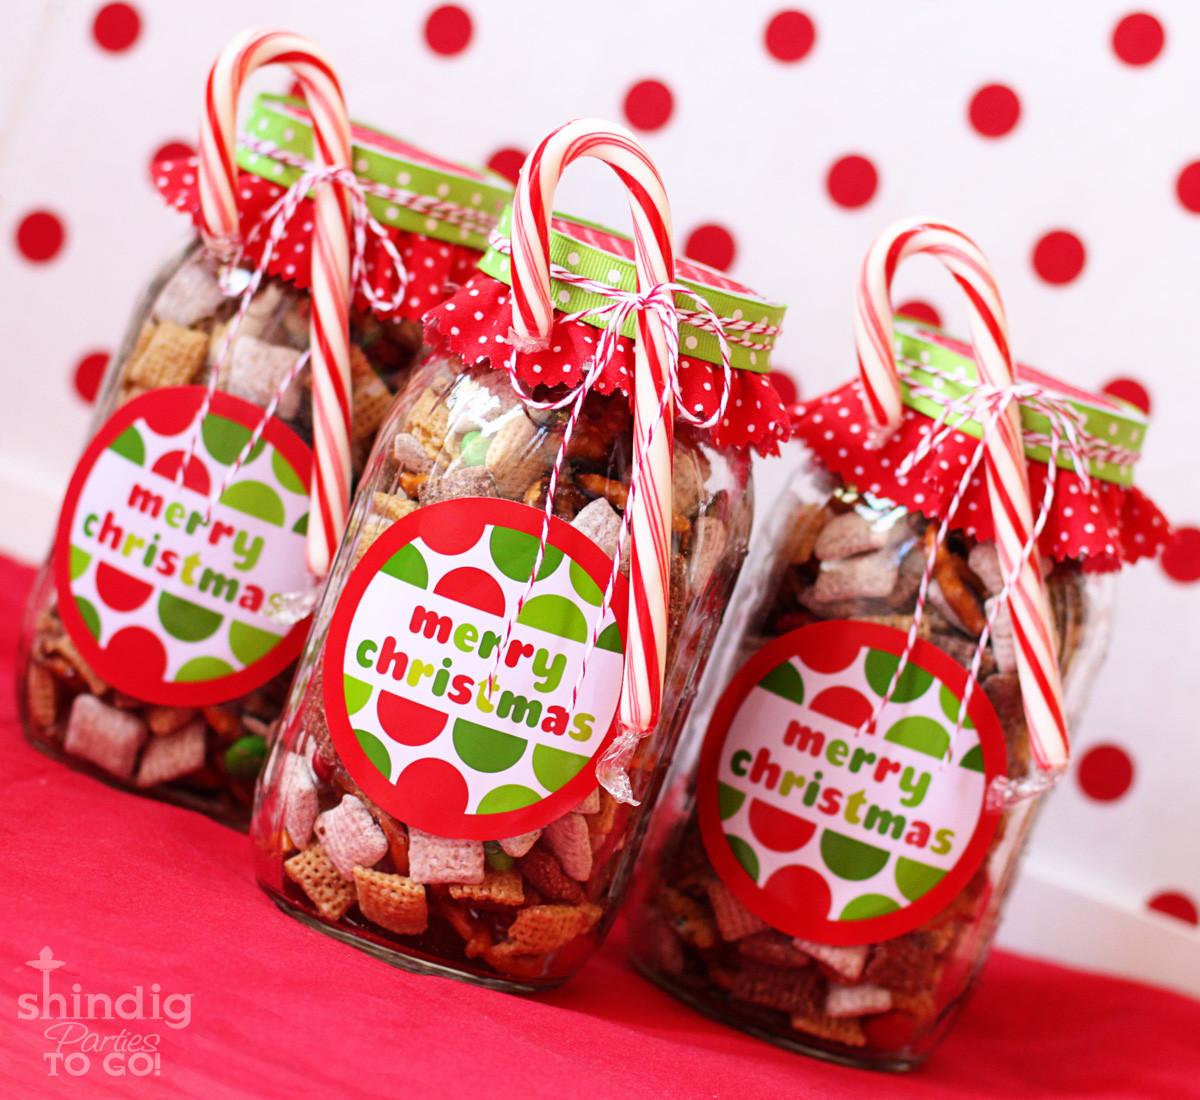 Homemade Christmas Candy Gifts  How To Make Handmade Chex Mix Holiday Gifts & Bonus Free